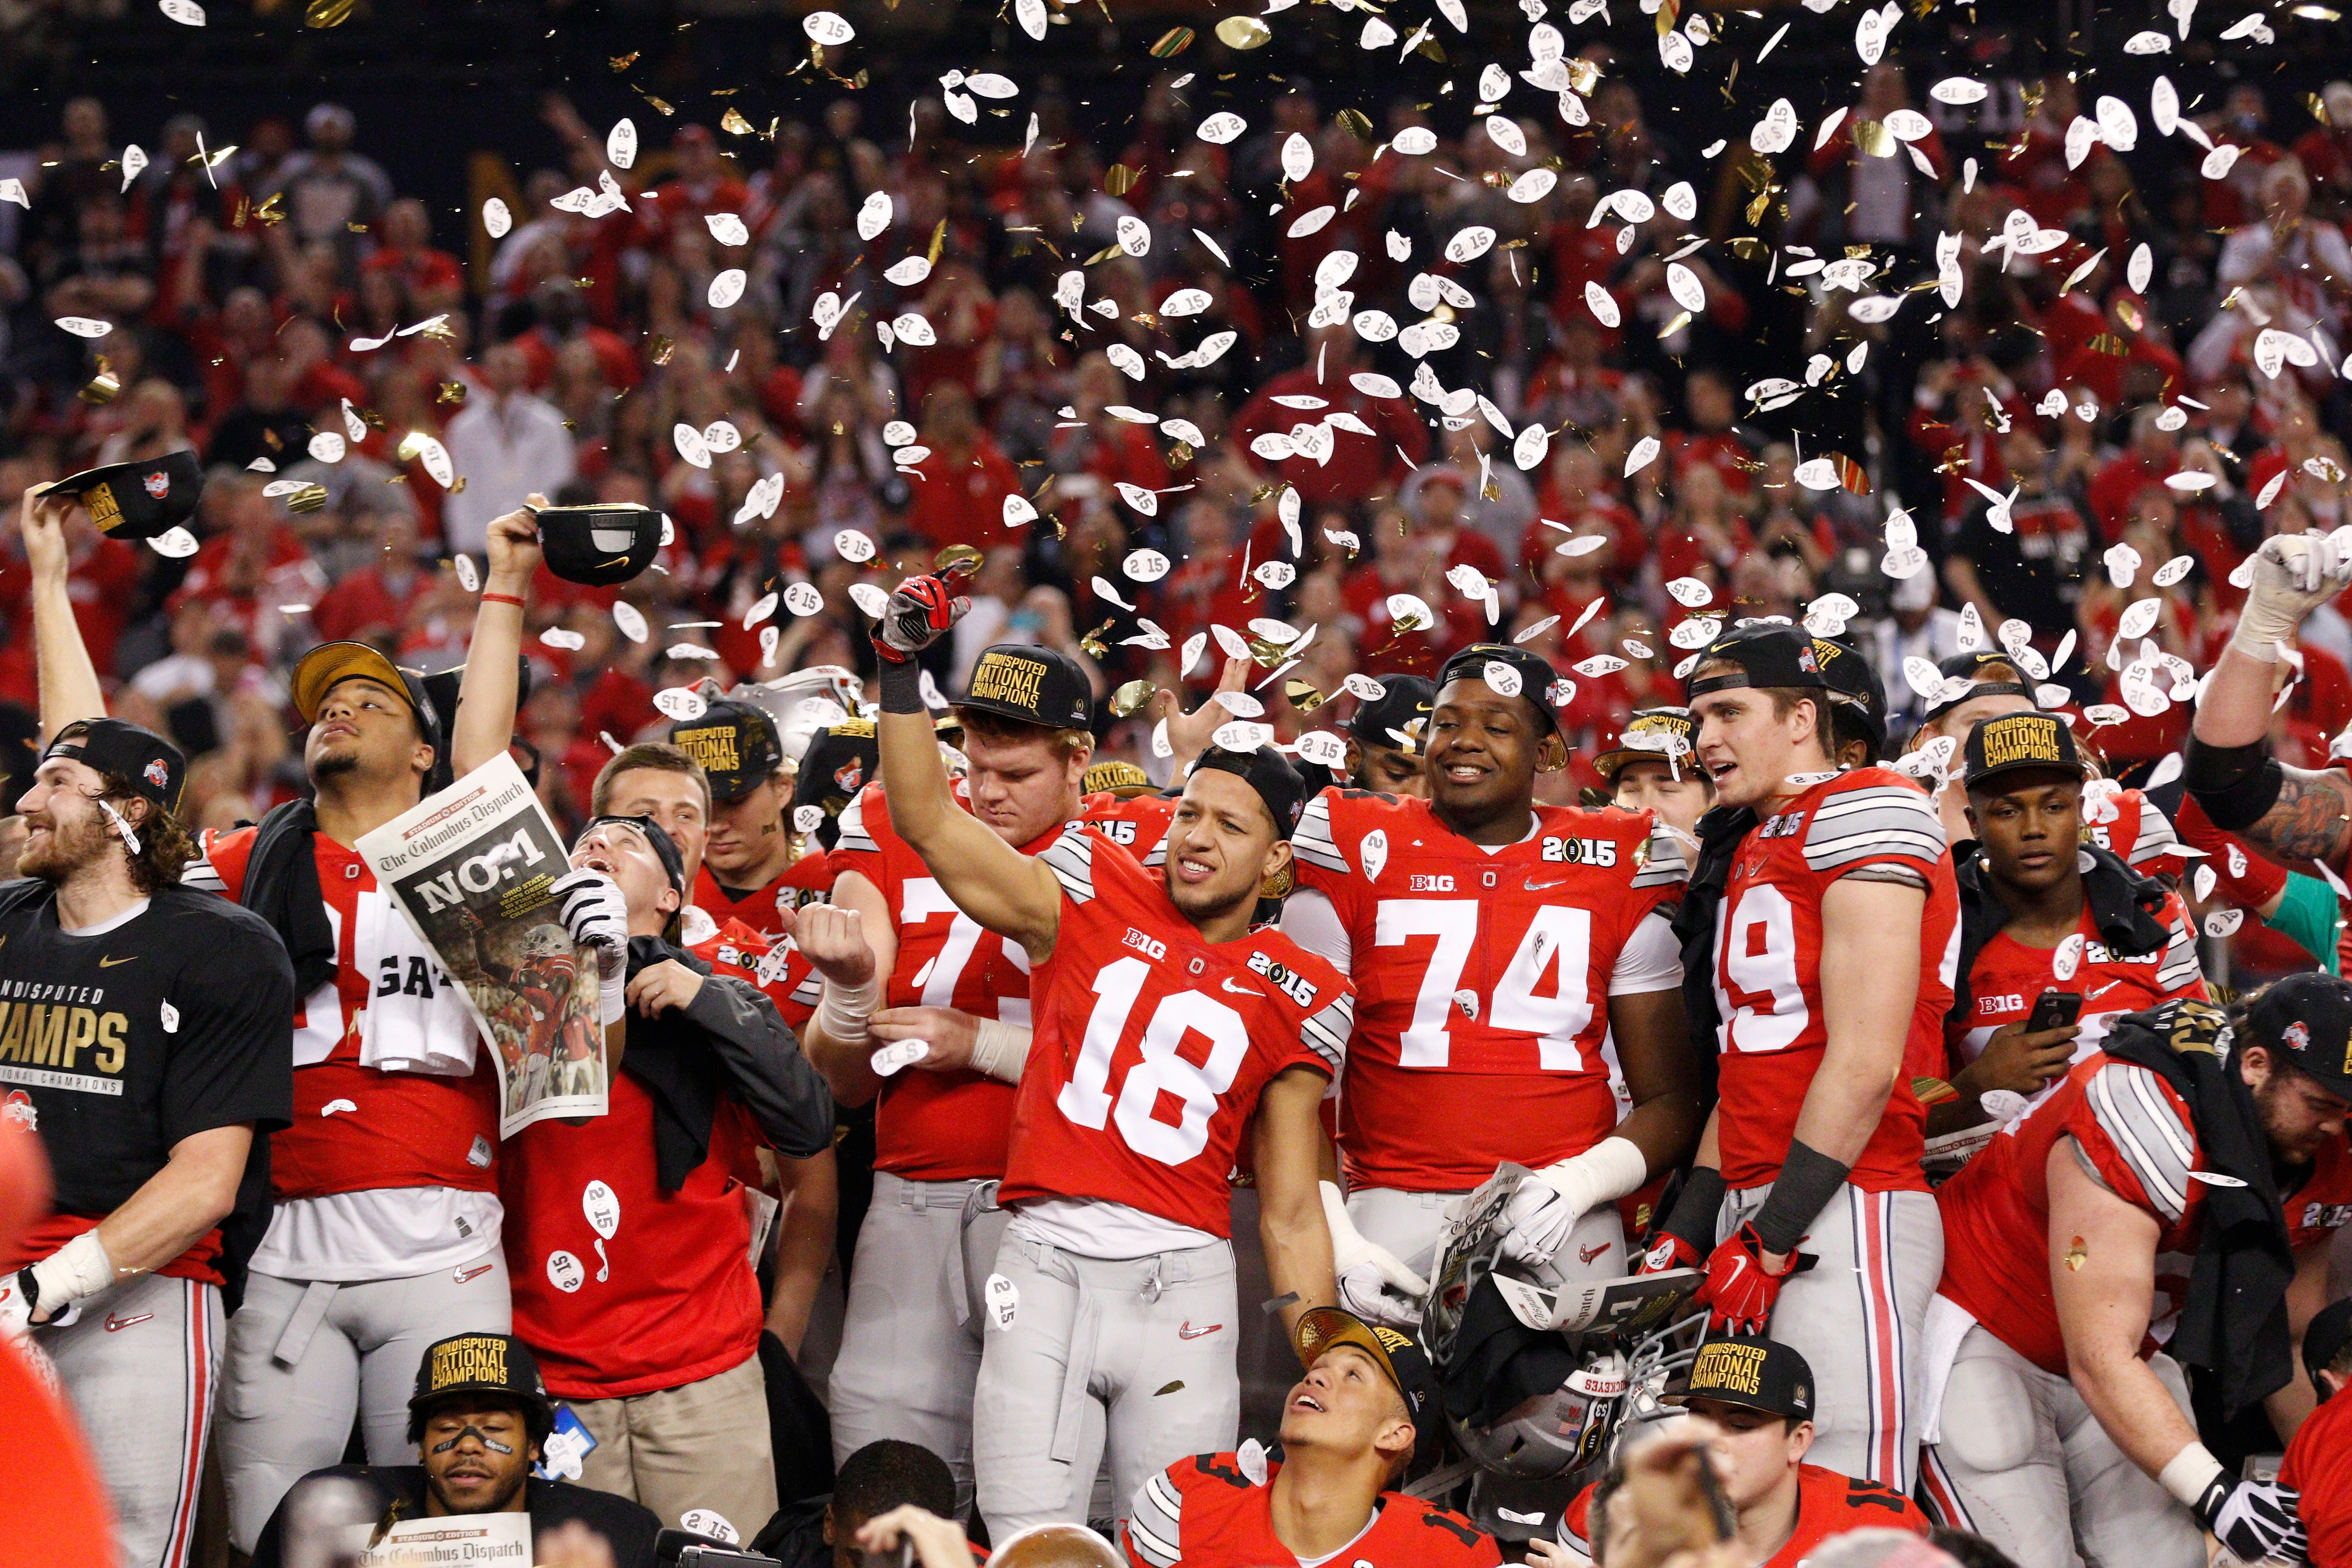 Score Of Last Year Ncaa Championship Game Football | Les ...